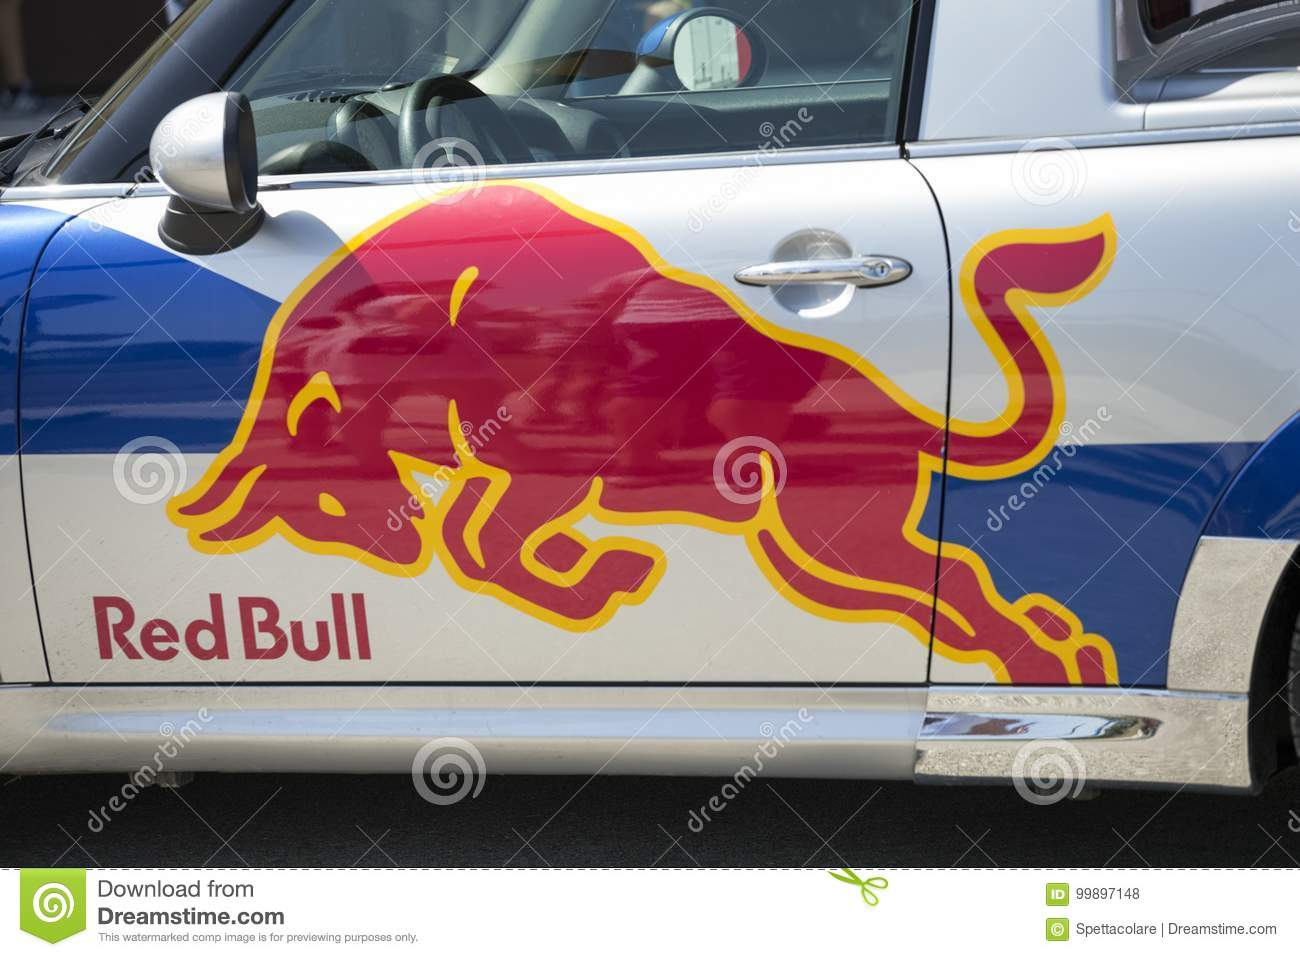 Dobanovci serbia august 26 2017 logo red bull on red bull car red bull gmbh is an austrian company which sells the red bull energy drink